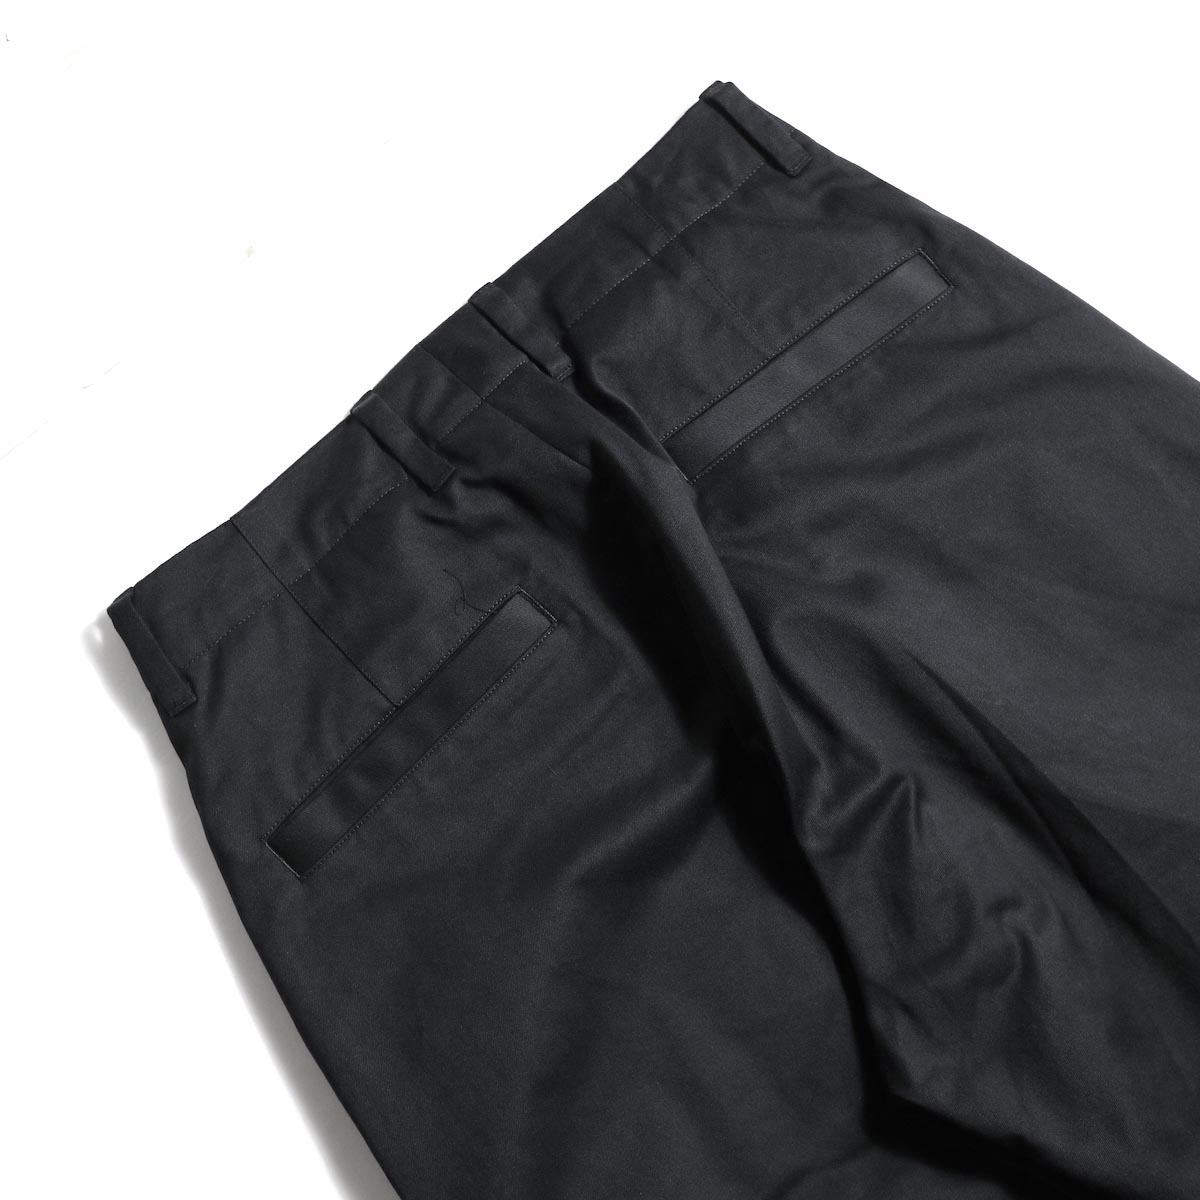 UNIVERSAL PRODUCTS / No Tuck Wide Chino Trousers (Black)ヒップポケット